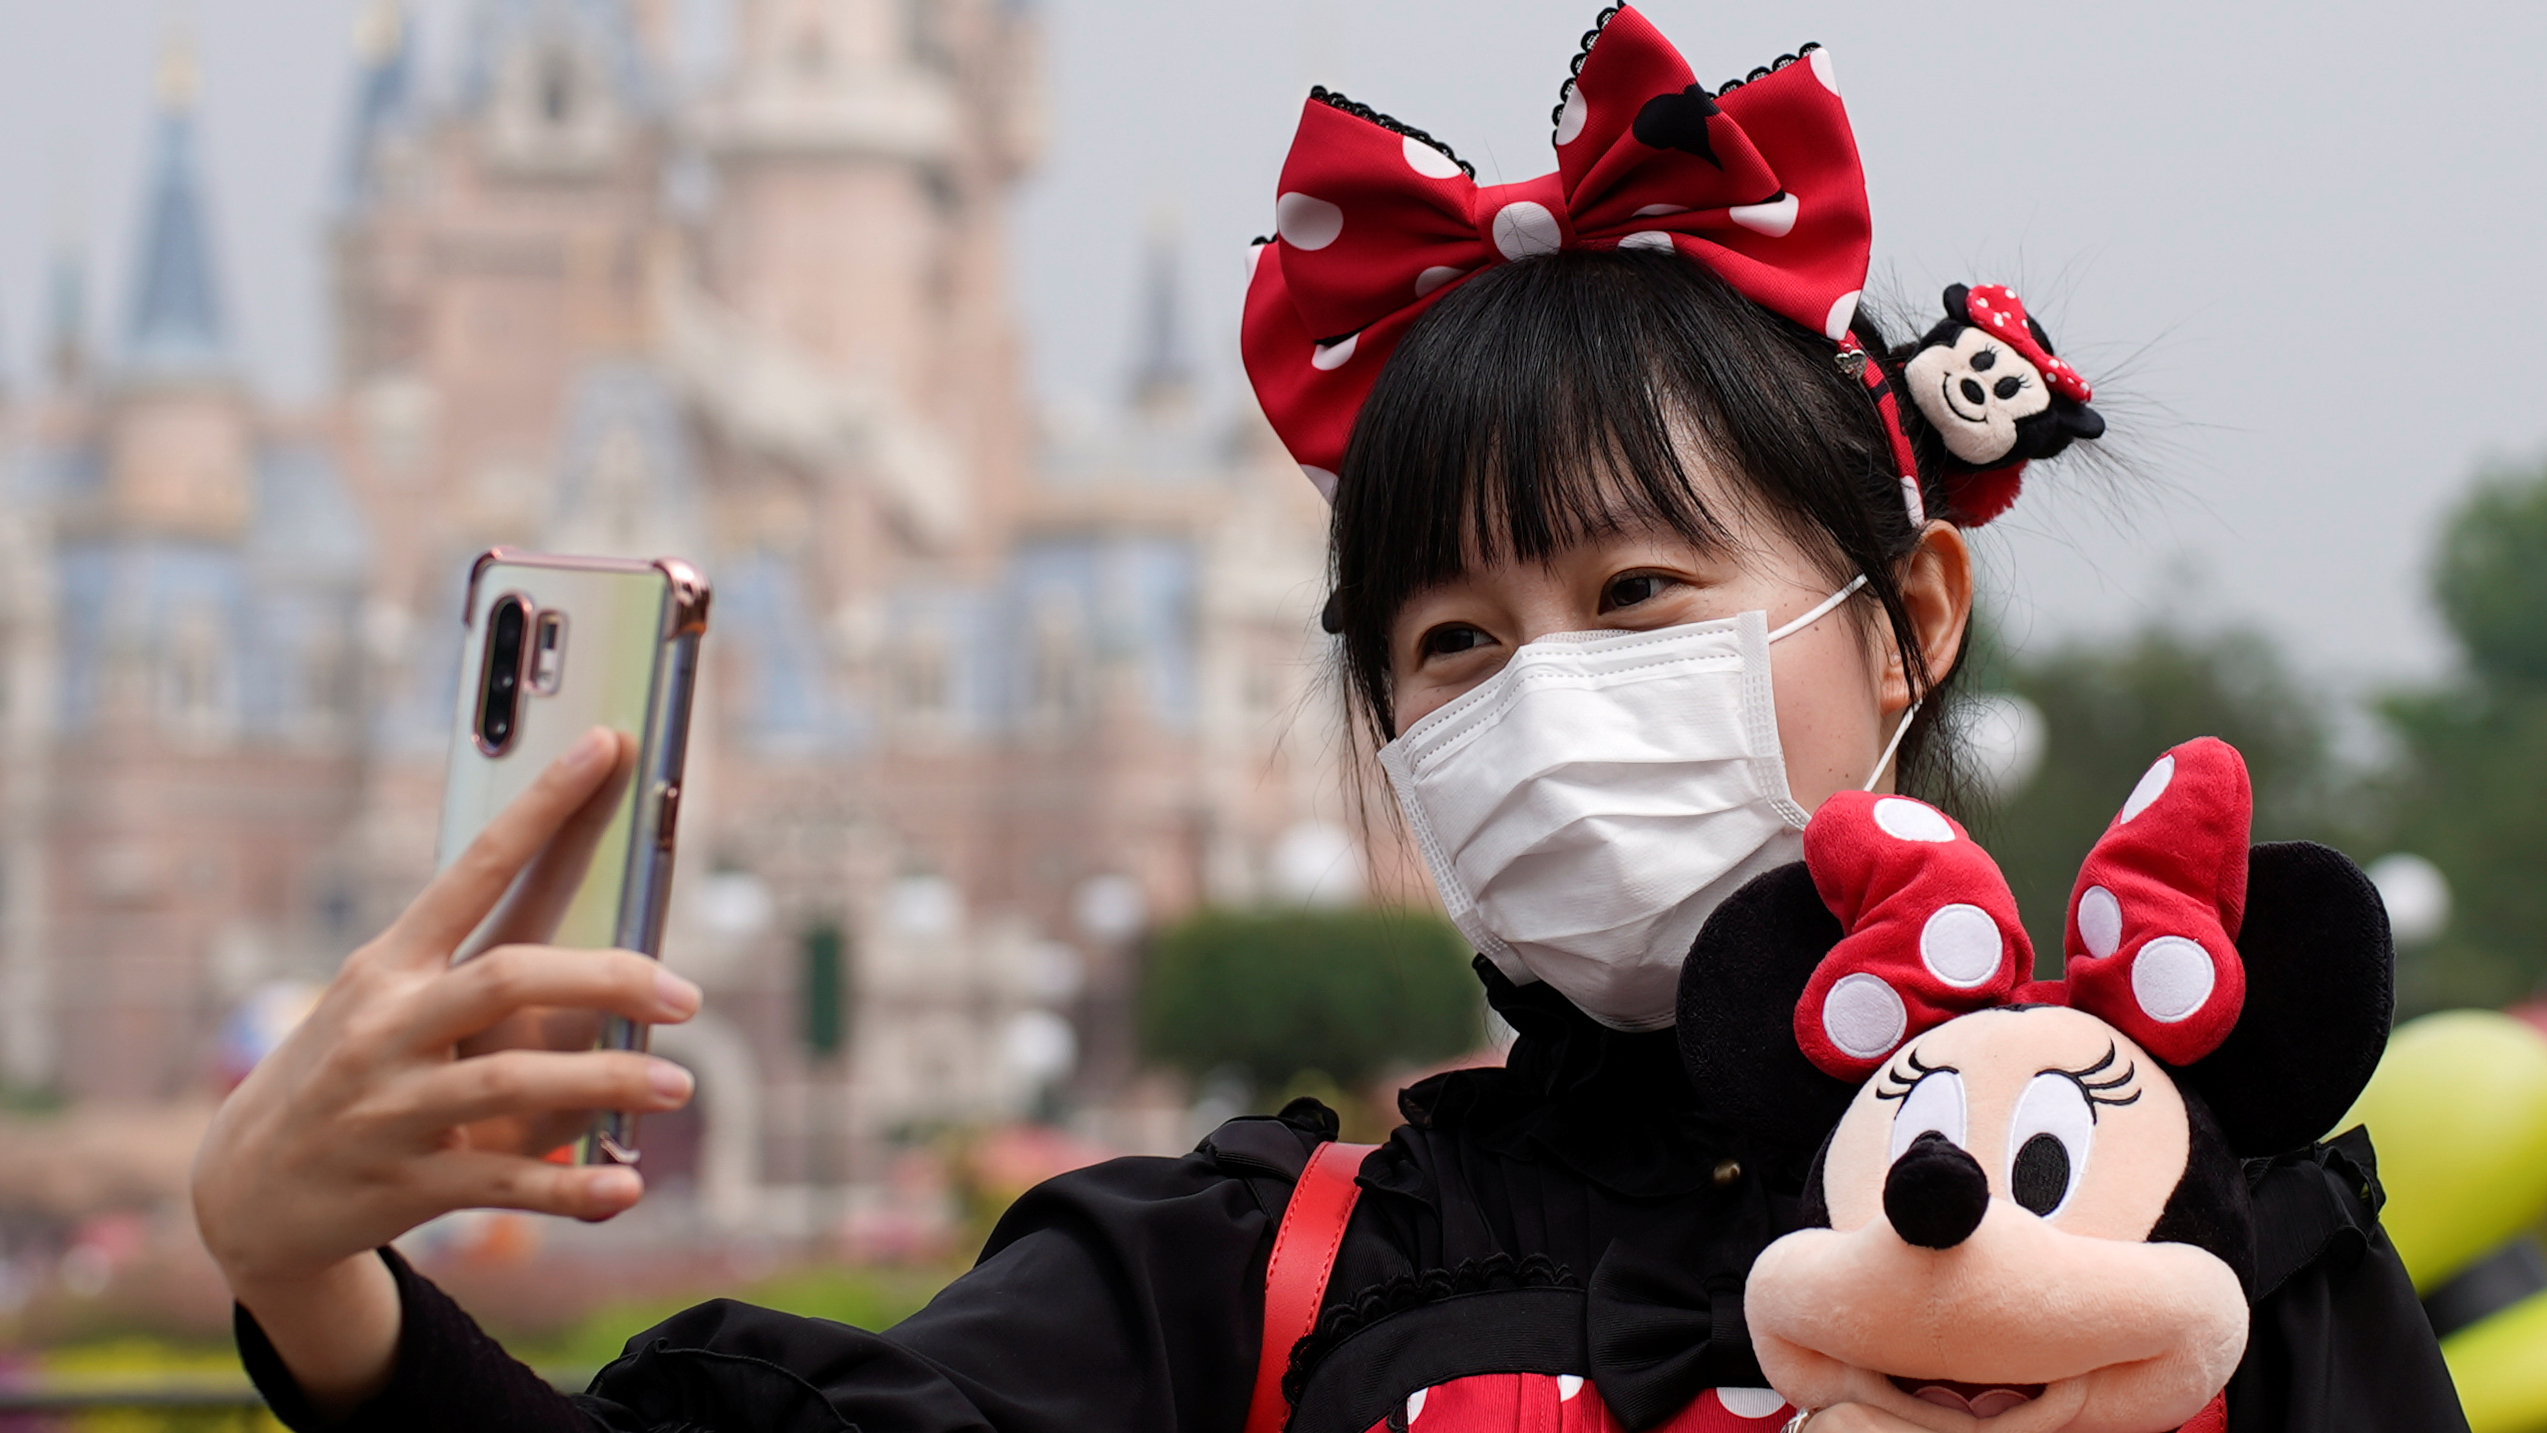 A young woman wears a red bow and holds a doll as she takes a selfie at Disneyland in Shanghai